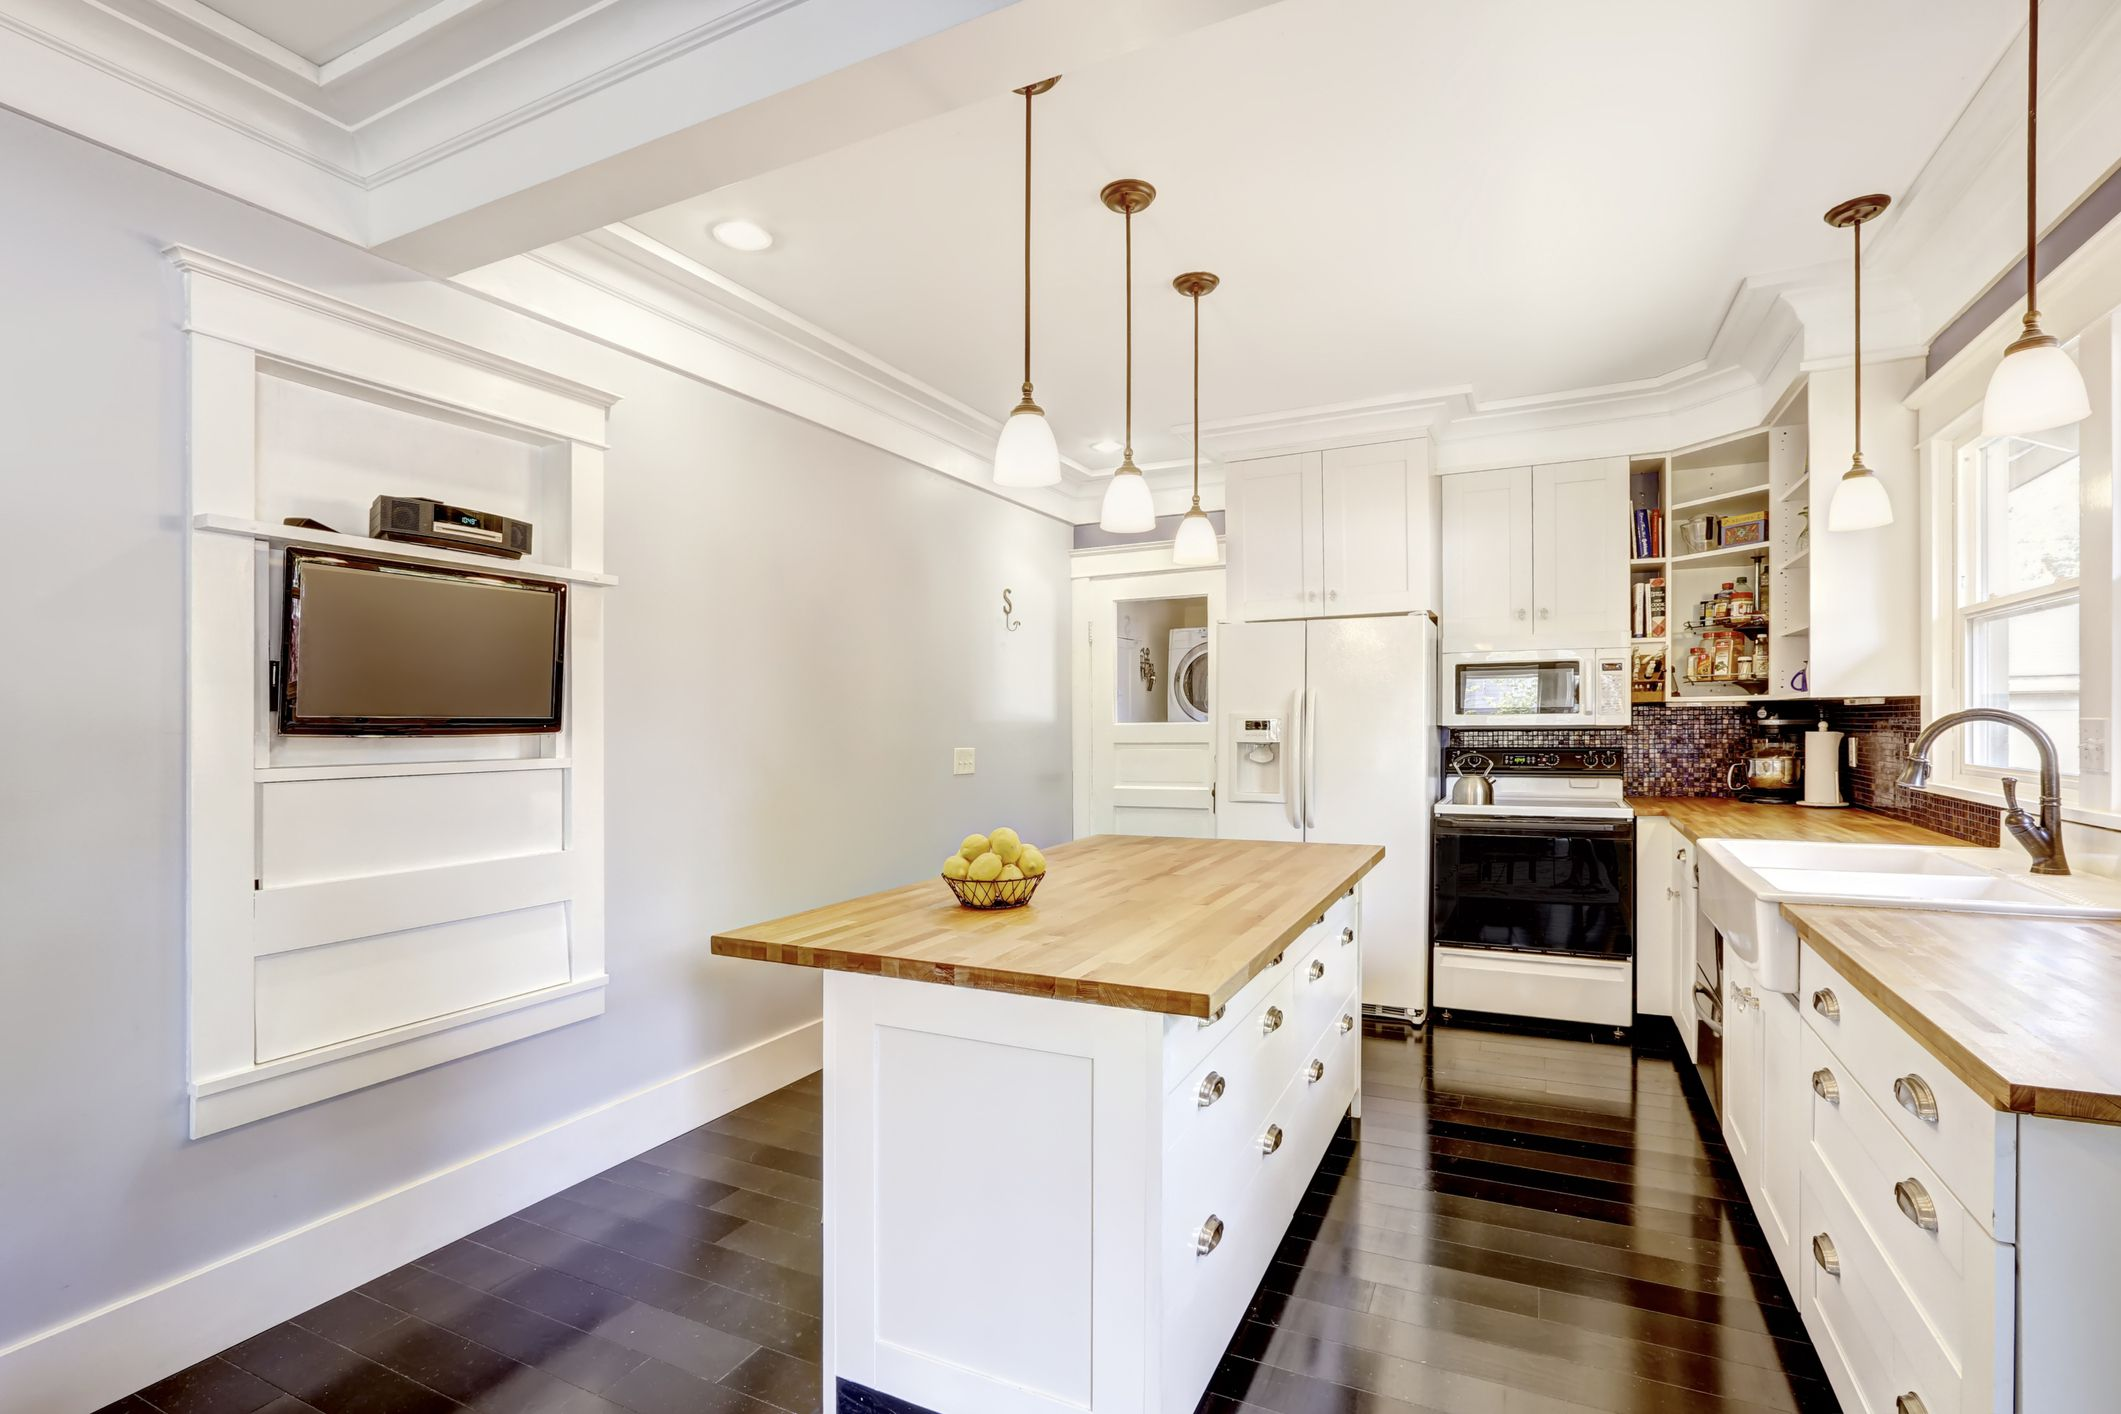 Top 4 Classic Coffered Ceiling Design Ideas Of 2020